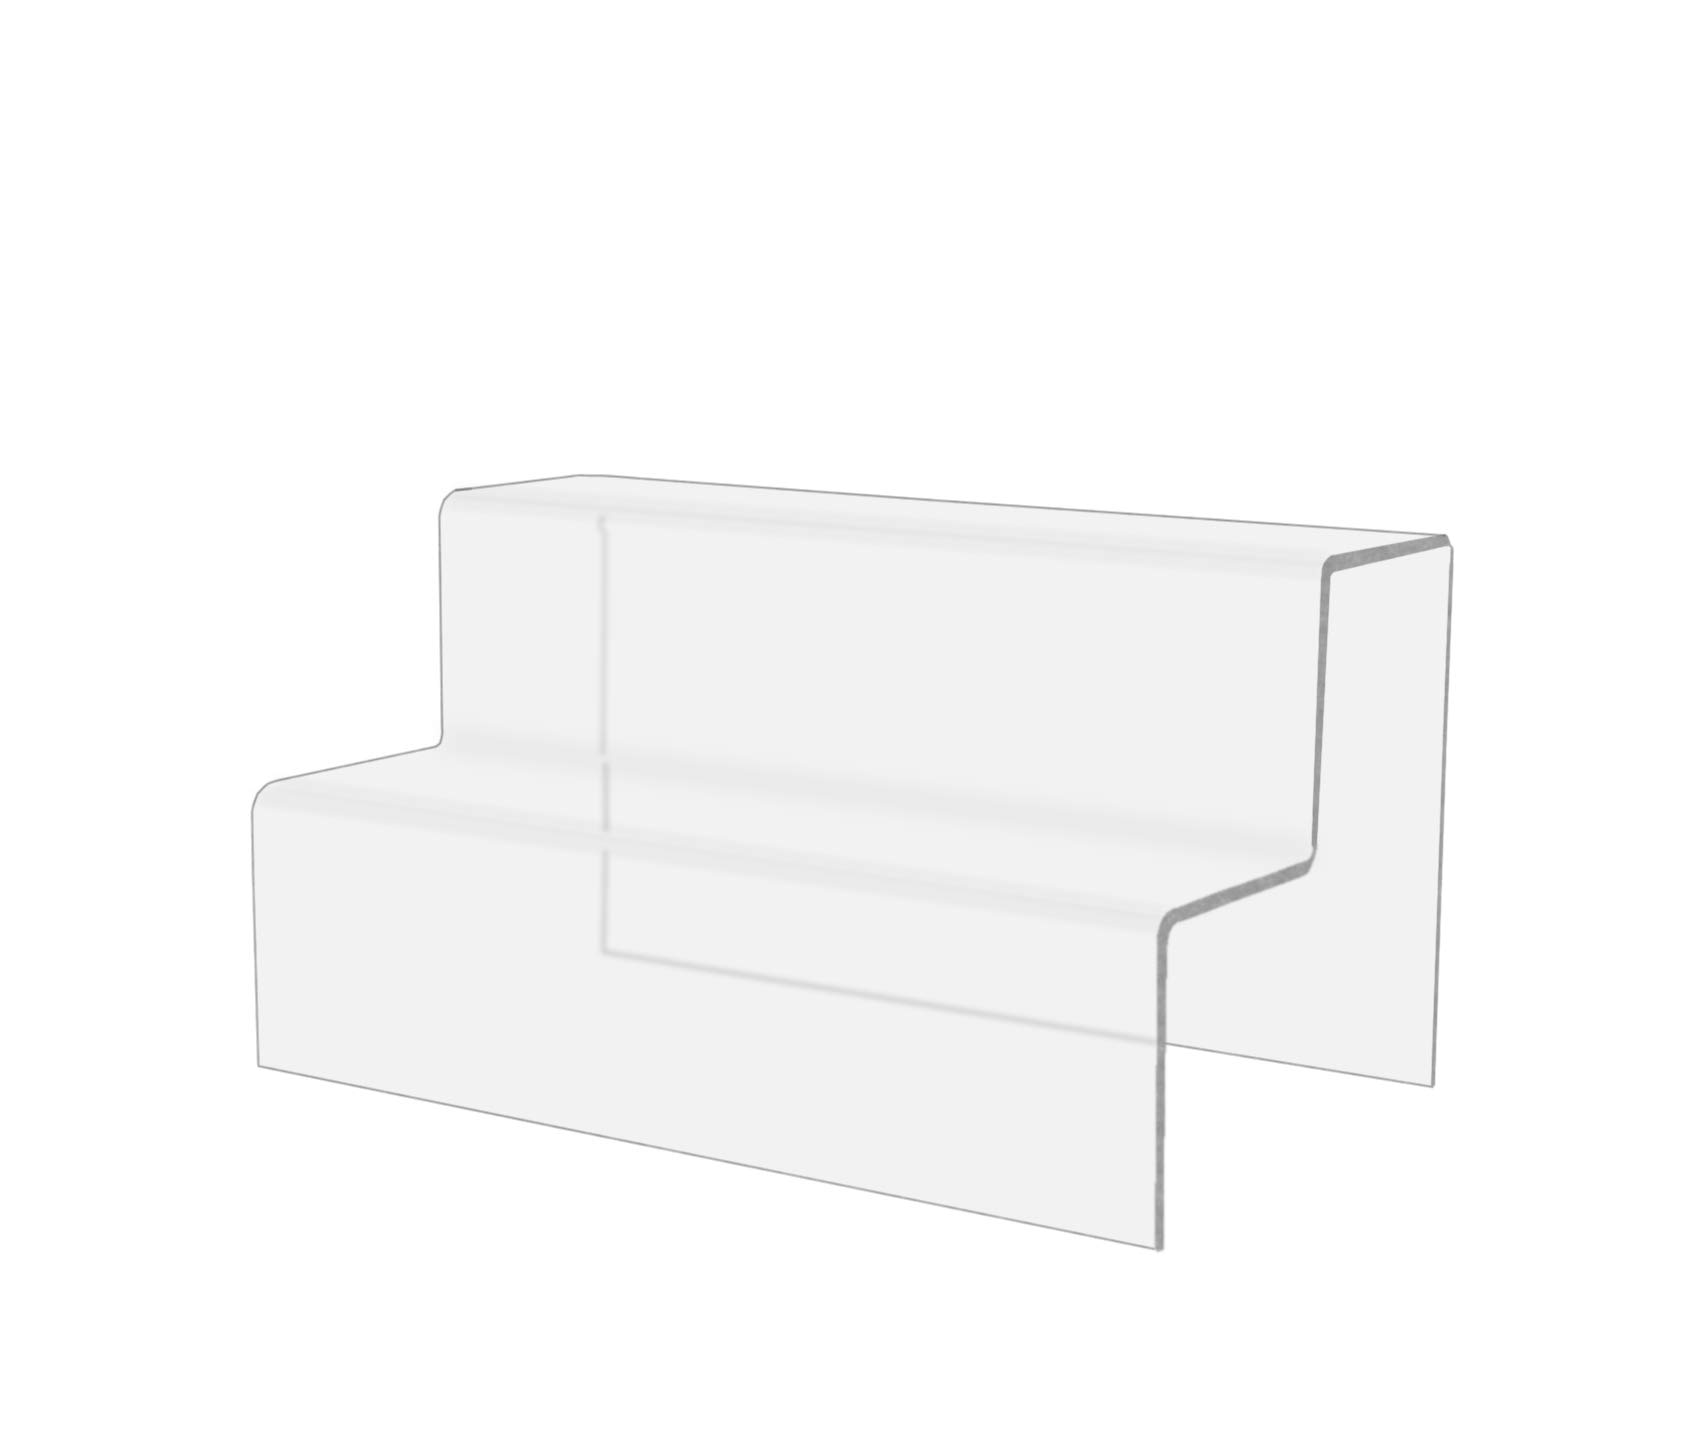 Marketing Holders 2 Tier Double Stairway Retail Display Countertop Trinket Collectible Showcase Tiered Riser Stand Pack of 10